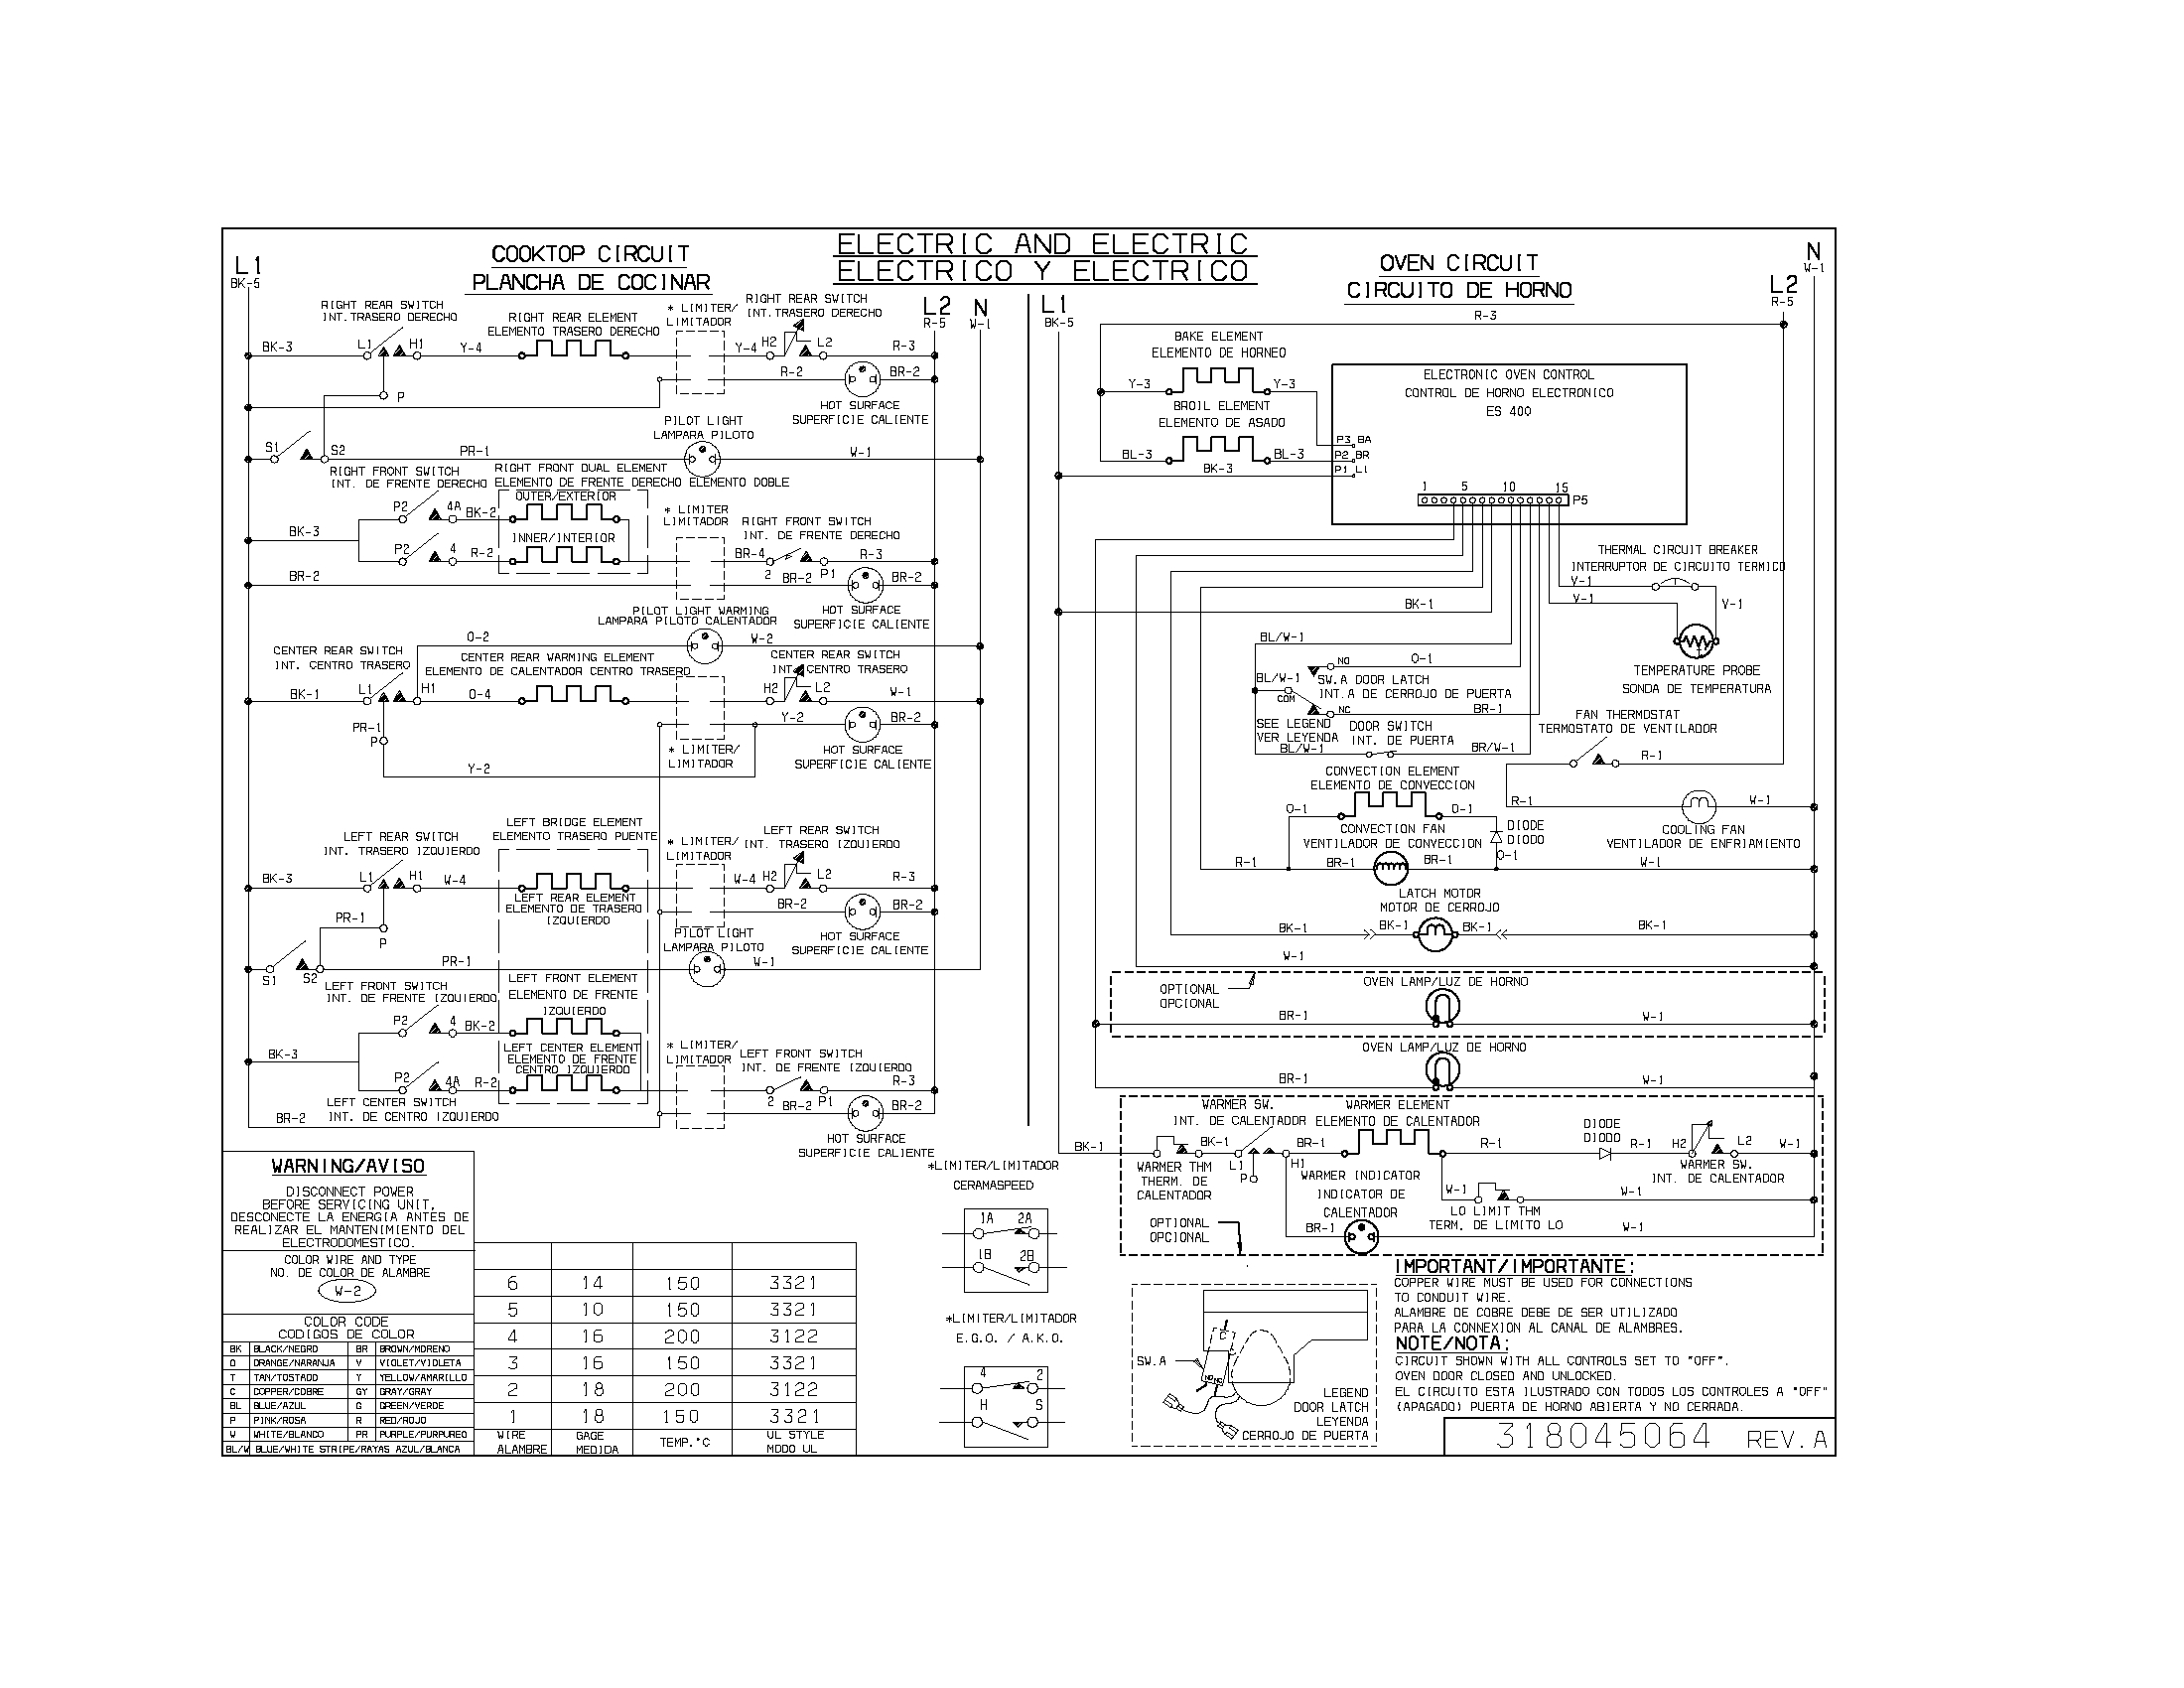 Sunfire Sdg 1 Wiring Diagram 28 Images Power Step U2022 Kenmore Dishwasher To Parts In 90 Series Dryer